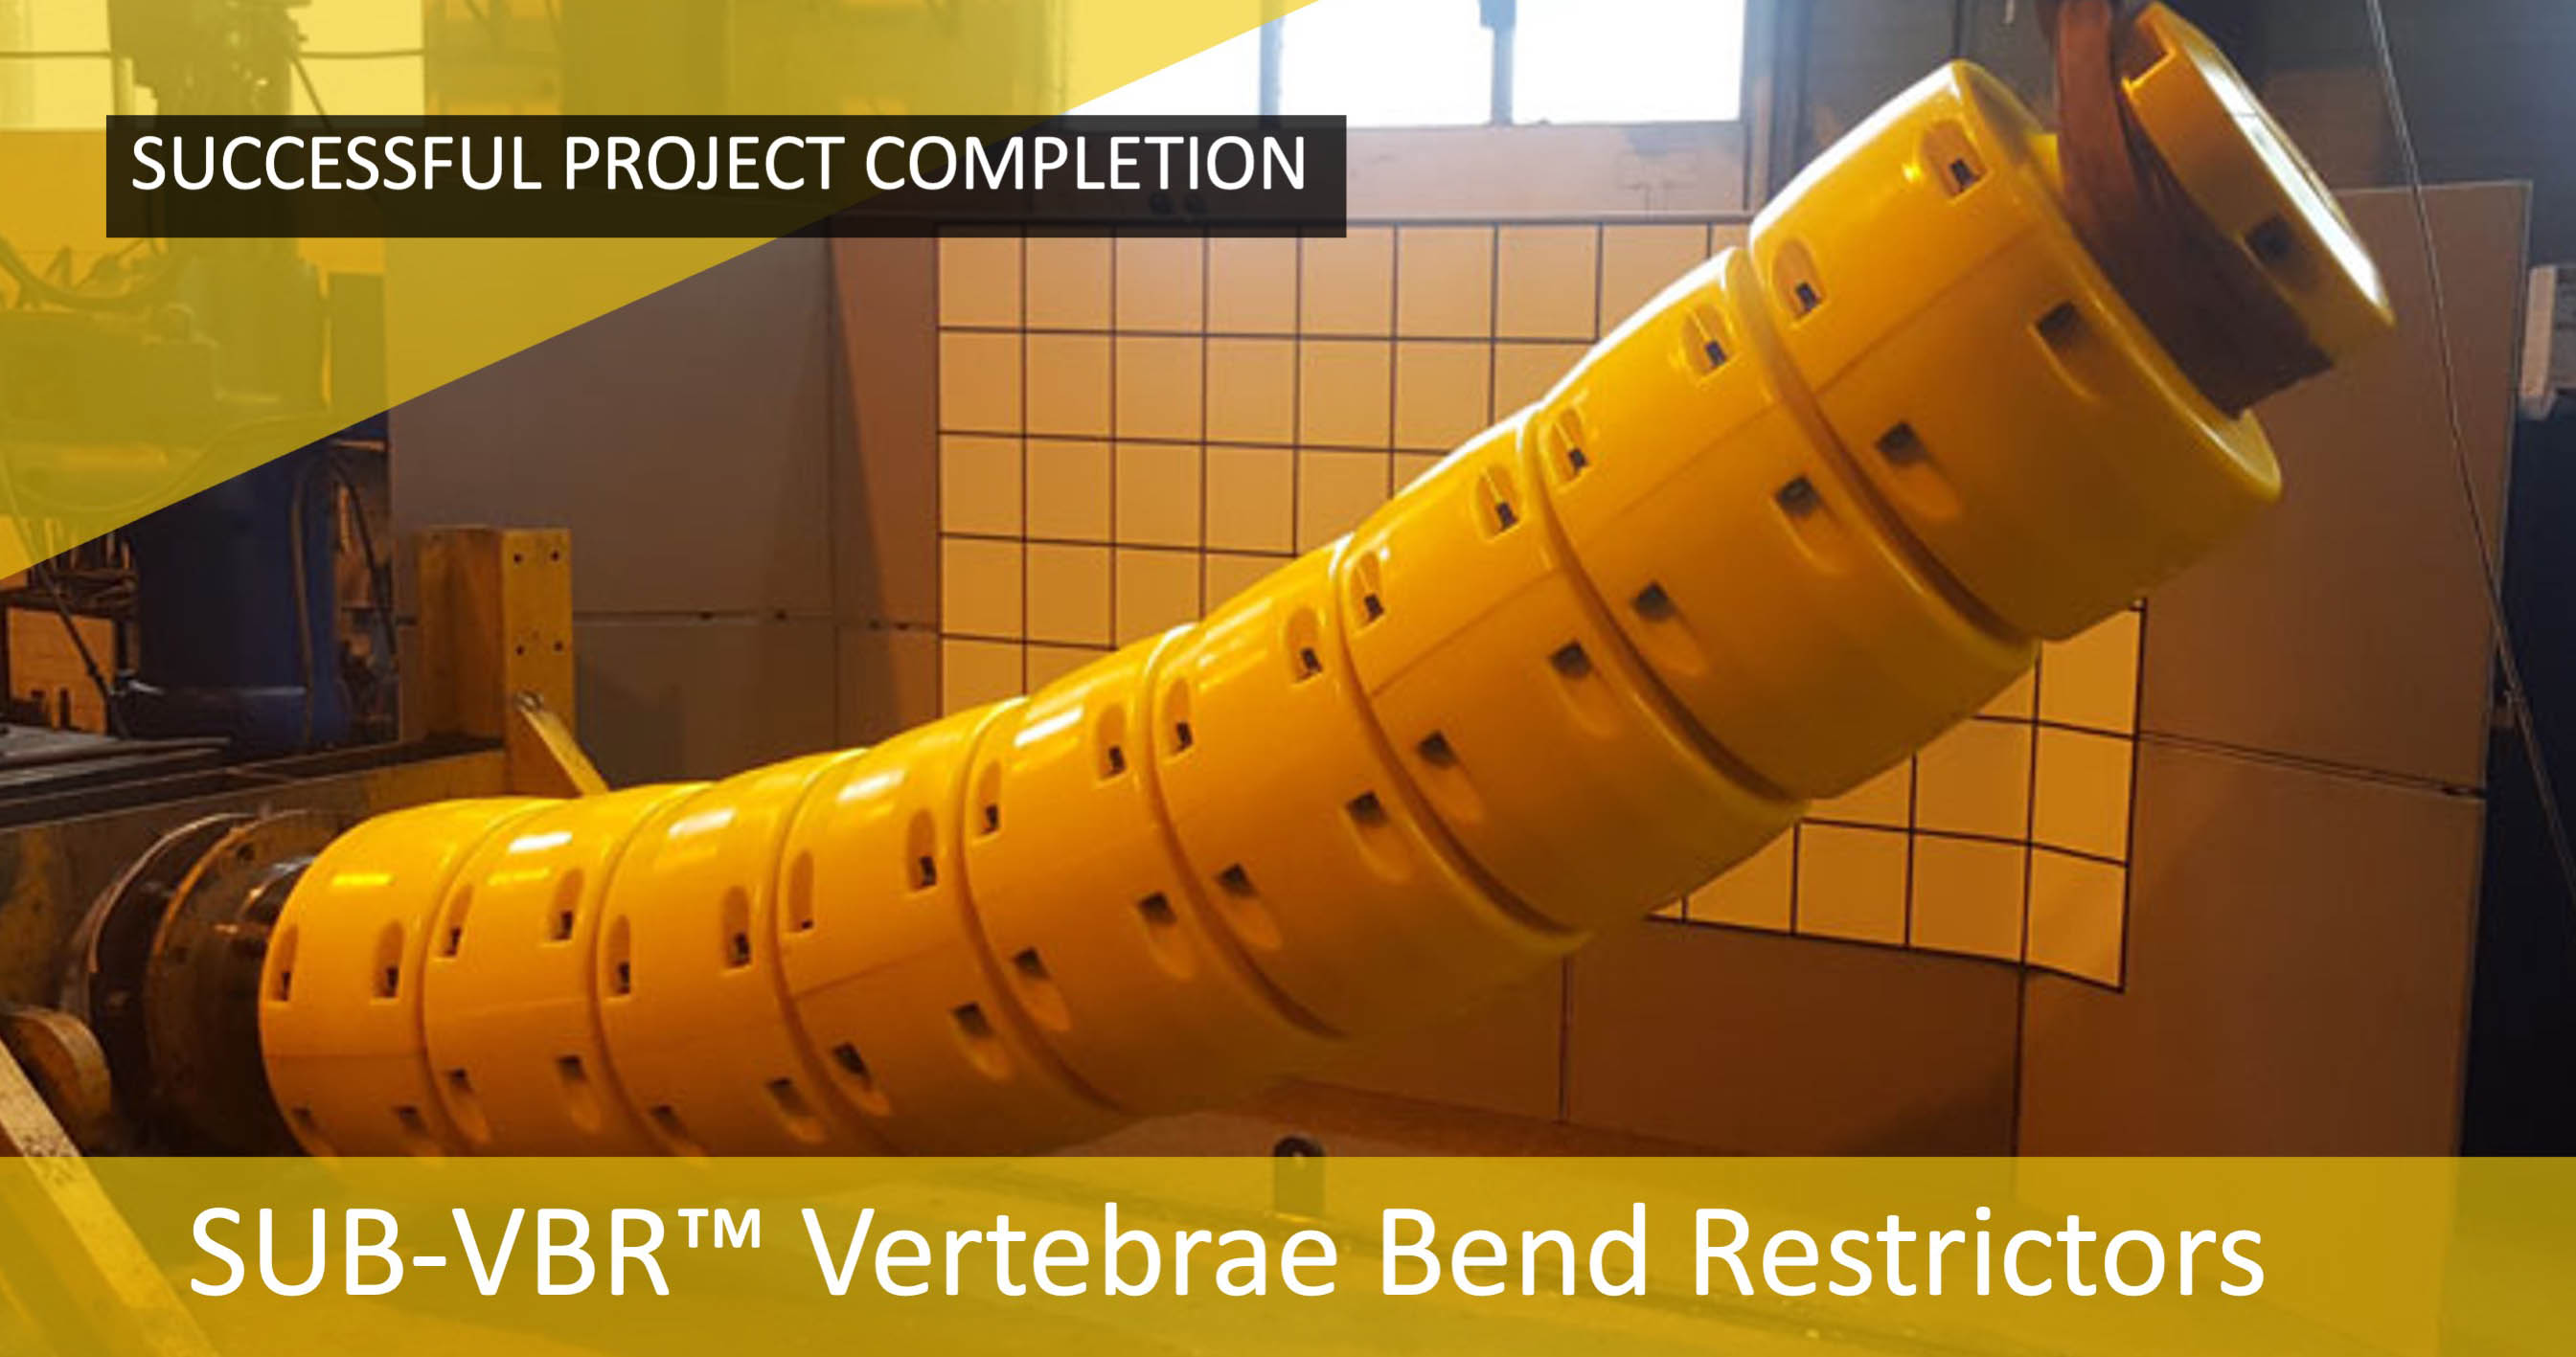 Subsea Energy Solutions (SES) completes major project in Africa for SUB-VBR™ Vertebrae Bend Restrictors.